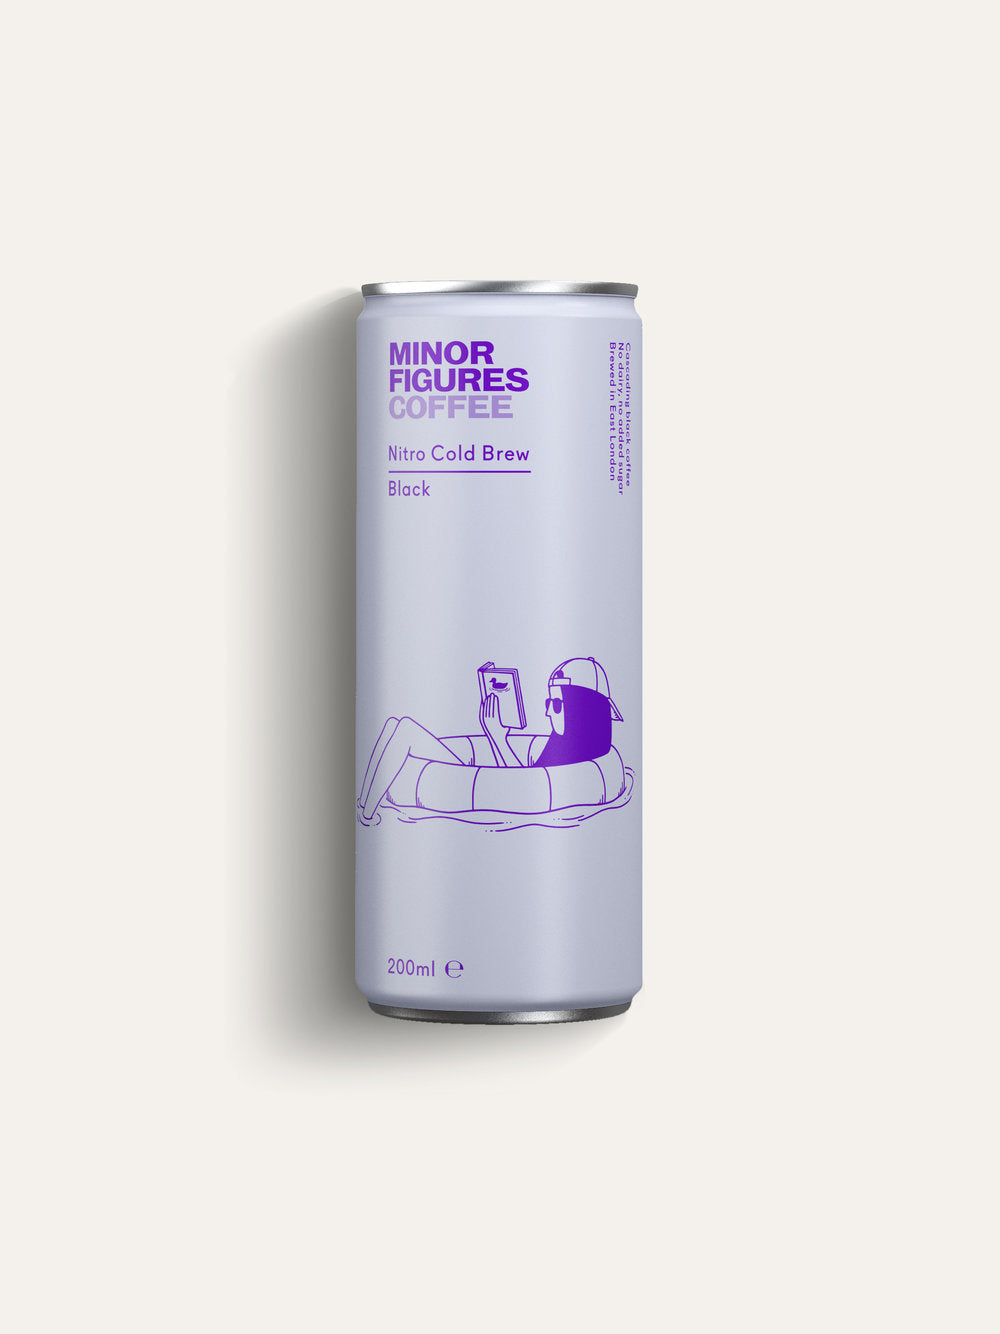 Minor Figures Nitro Cold Brew Black - 200ml - Shipping From Just £2.99 Or FREE When You Spend £55 Or More